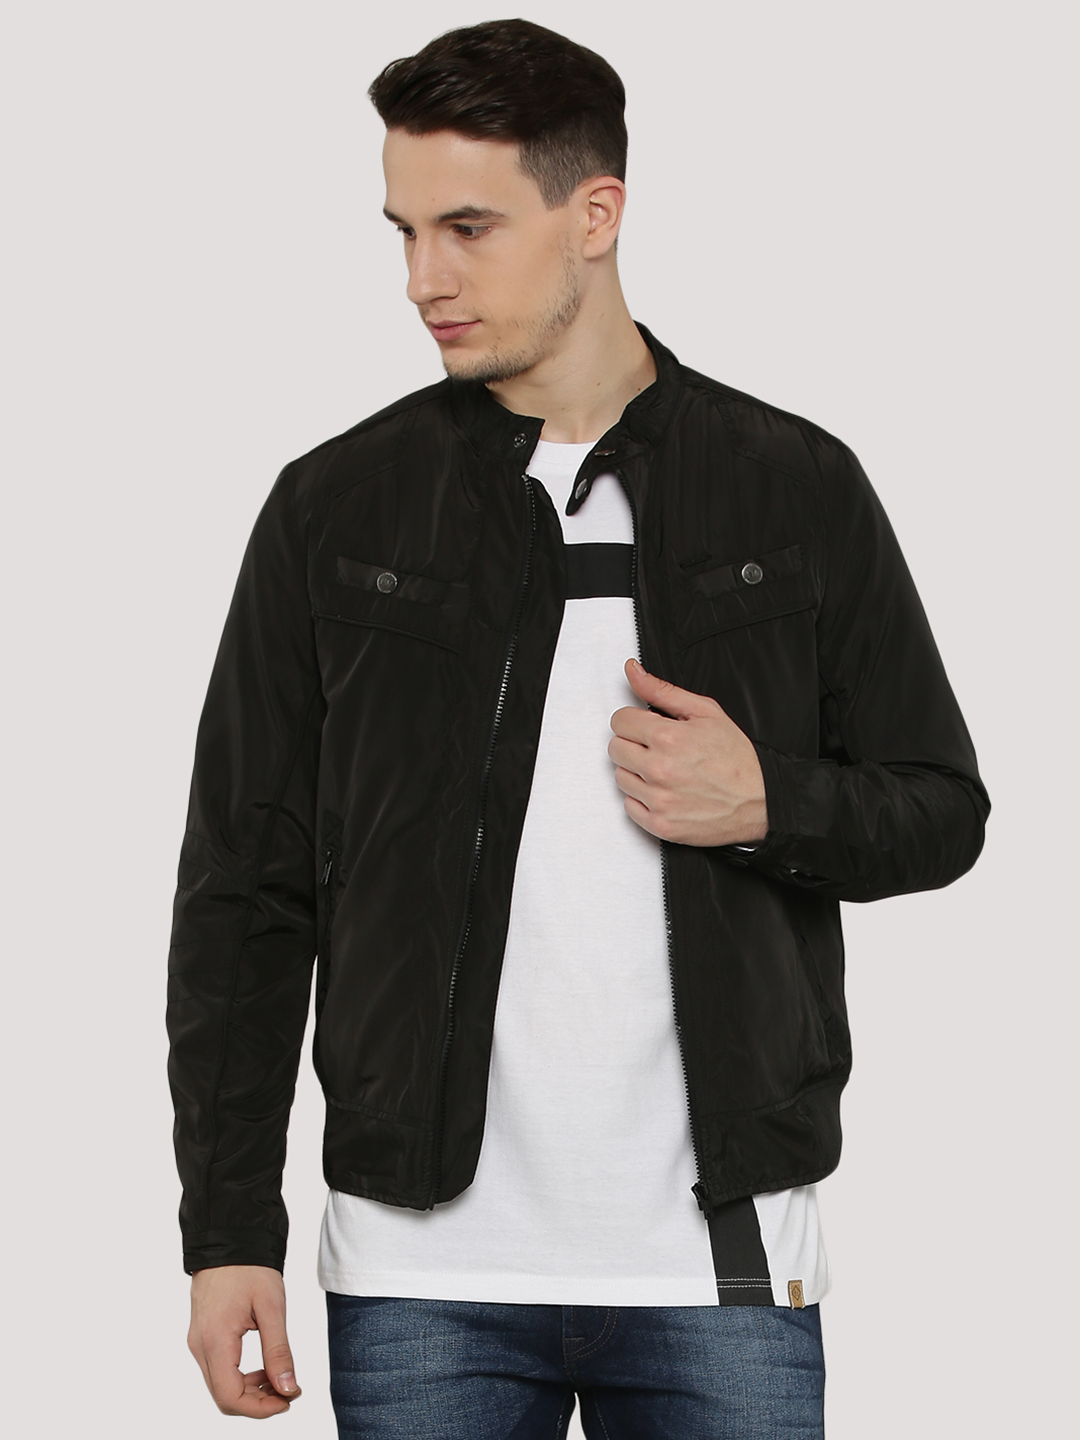 Flying Machine Black Zip Jacket With Snap Button Collar 1